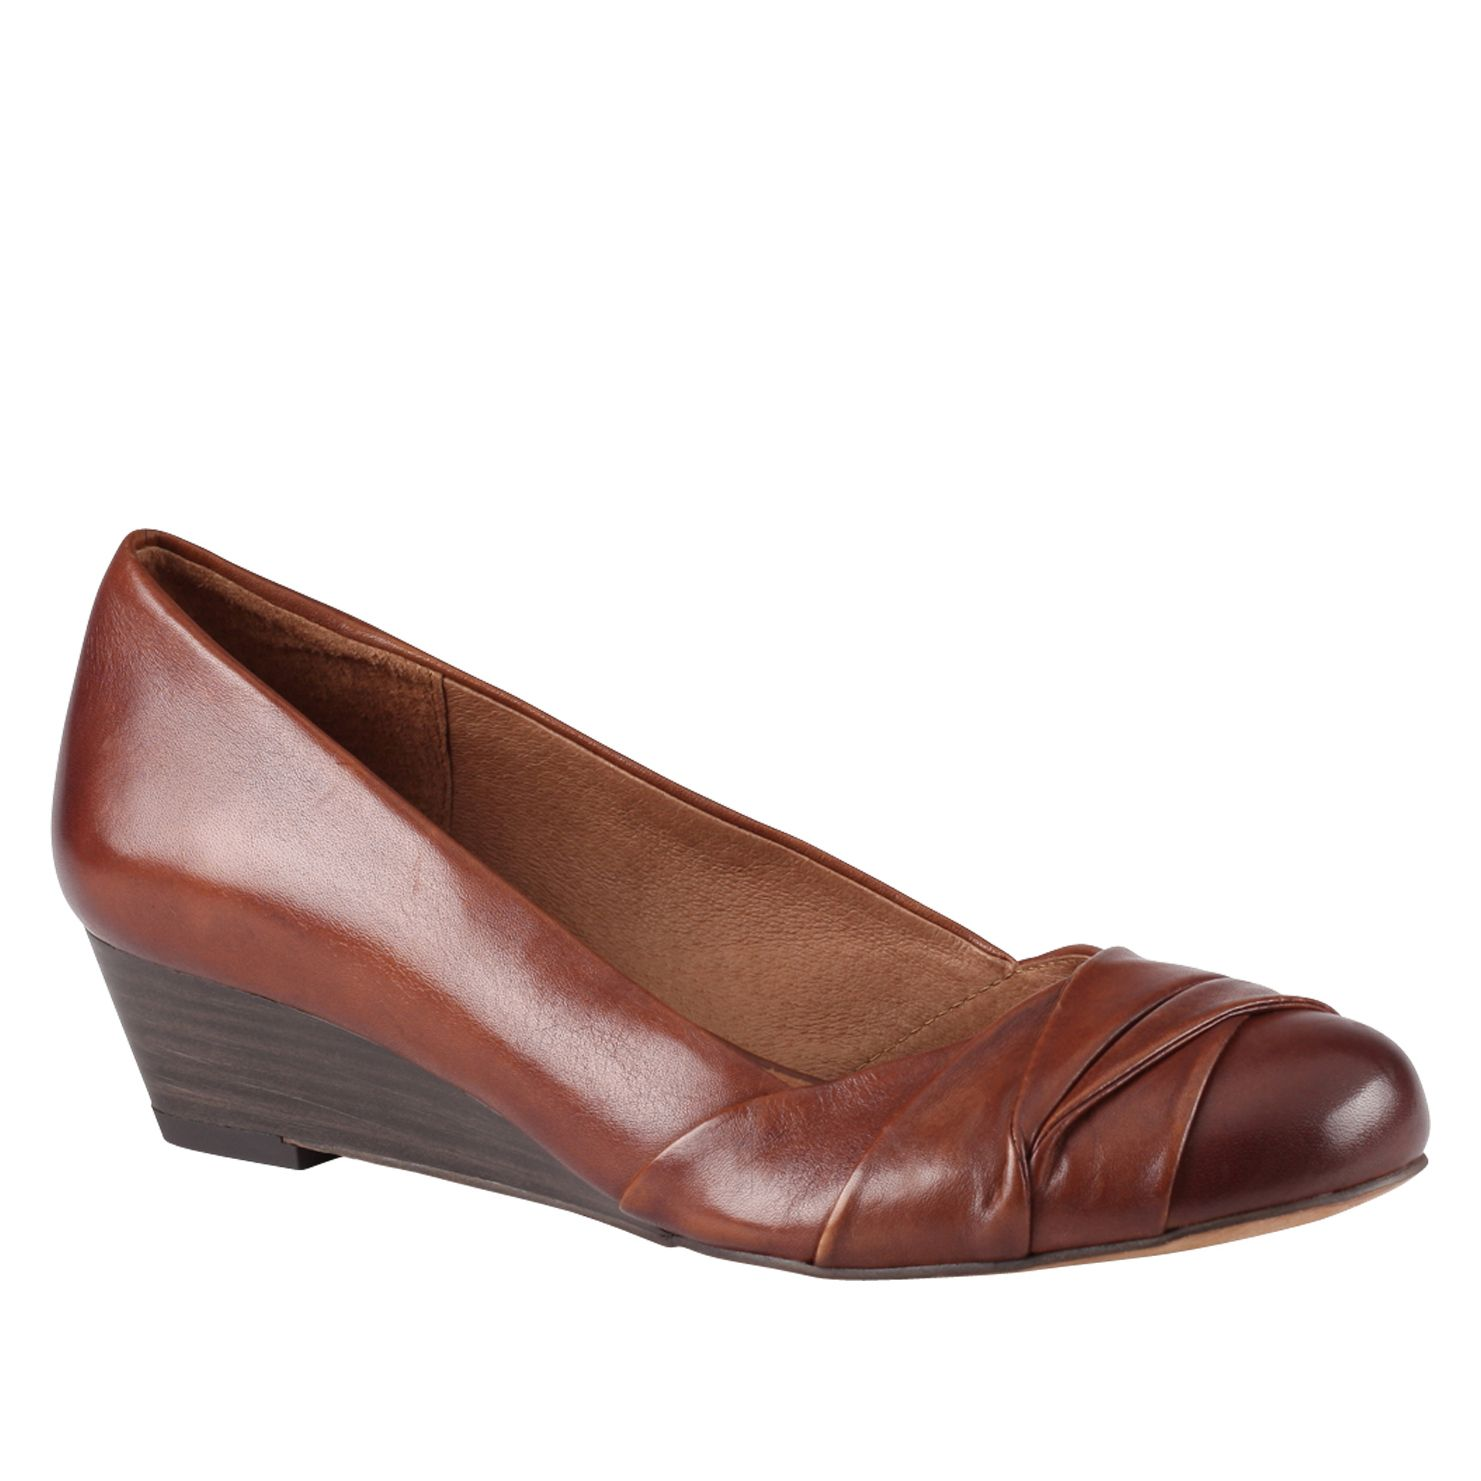 Methelda court shoes